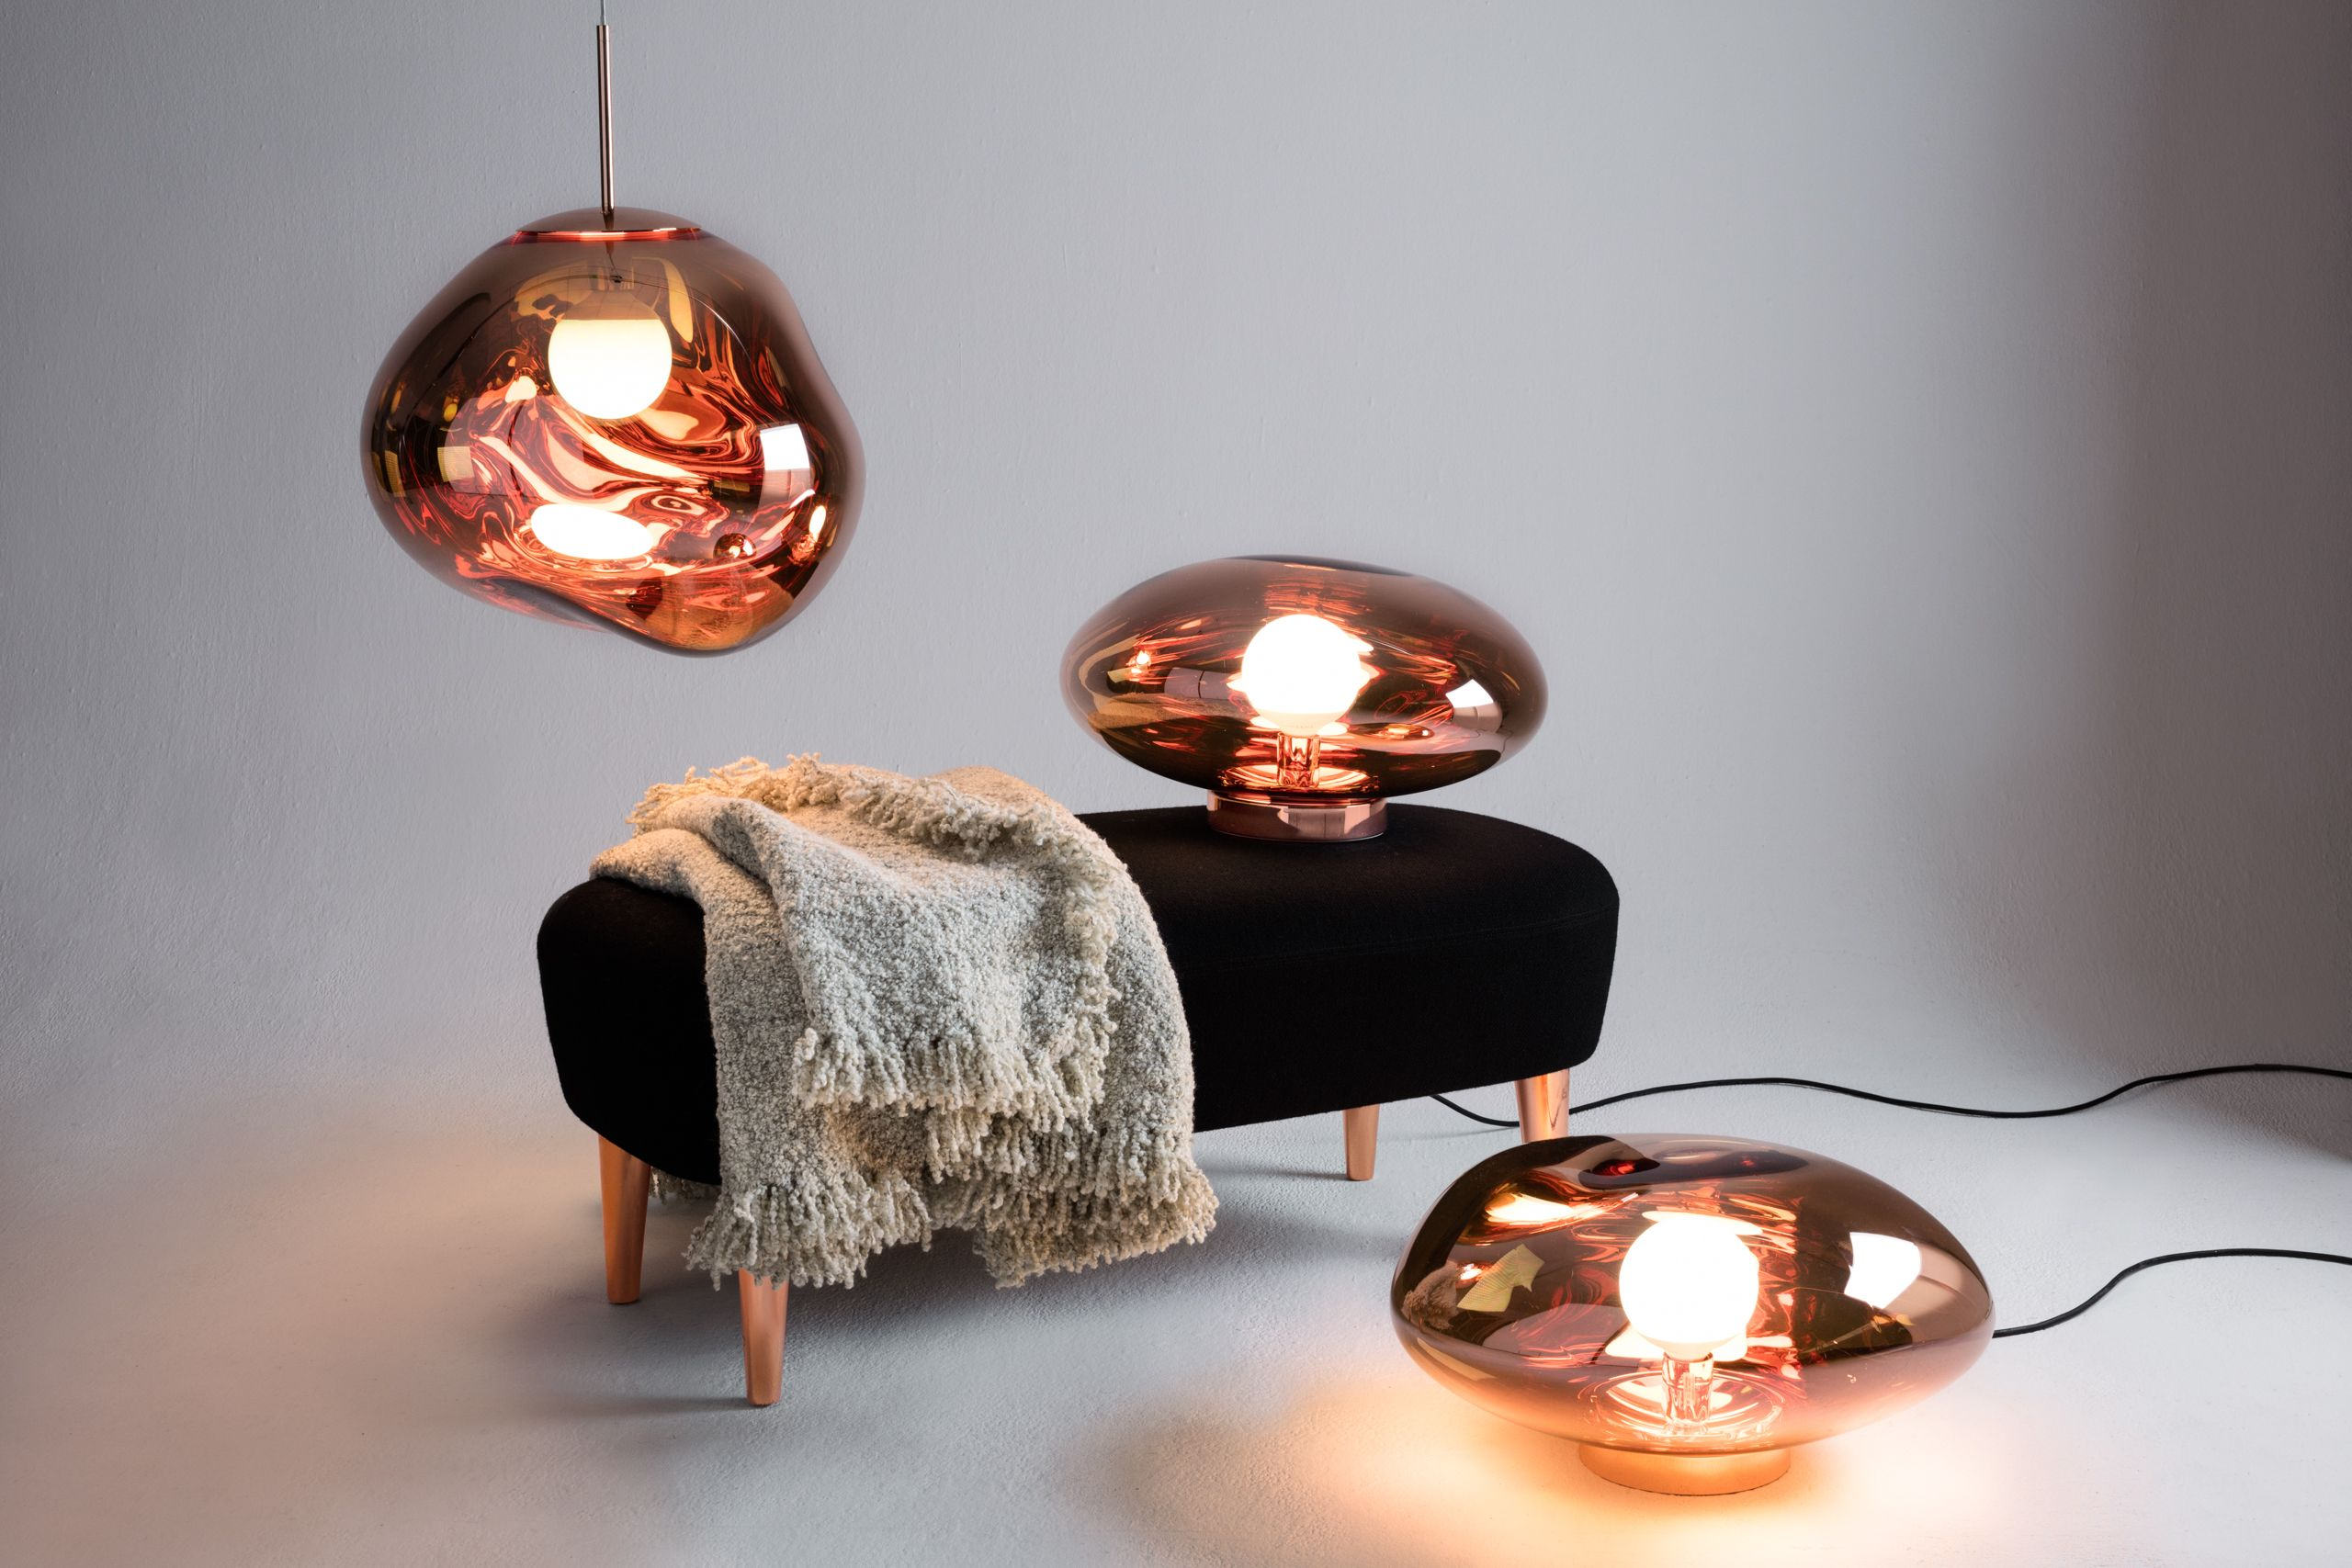 Melt Surface Copper With Melt Copper Pendant Wingback Long Ottoman Boucle Throw 15 Off All Tom Dixon Light Tom Dixon Melt Tom Dixon Modern Furniture Shops